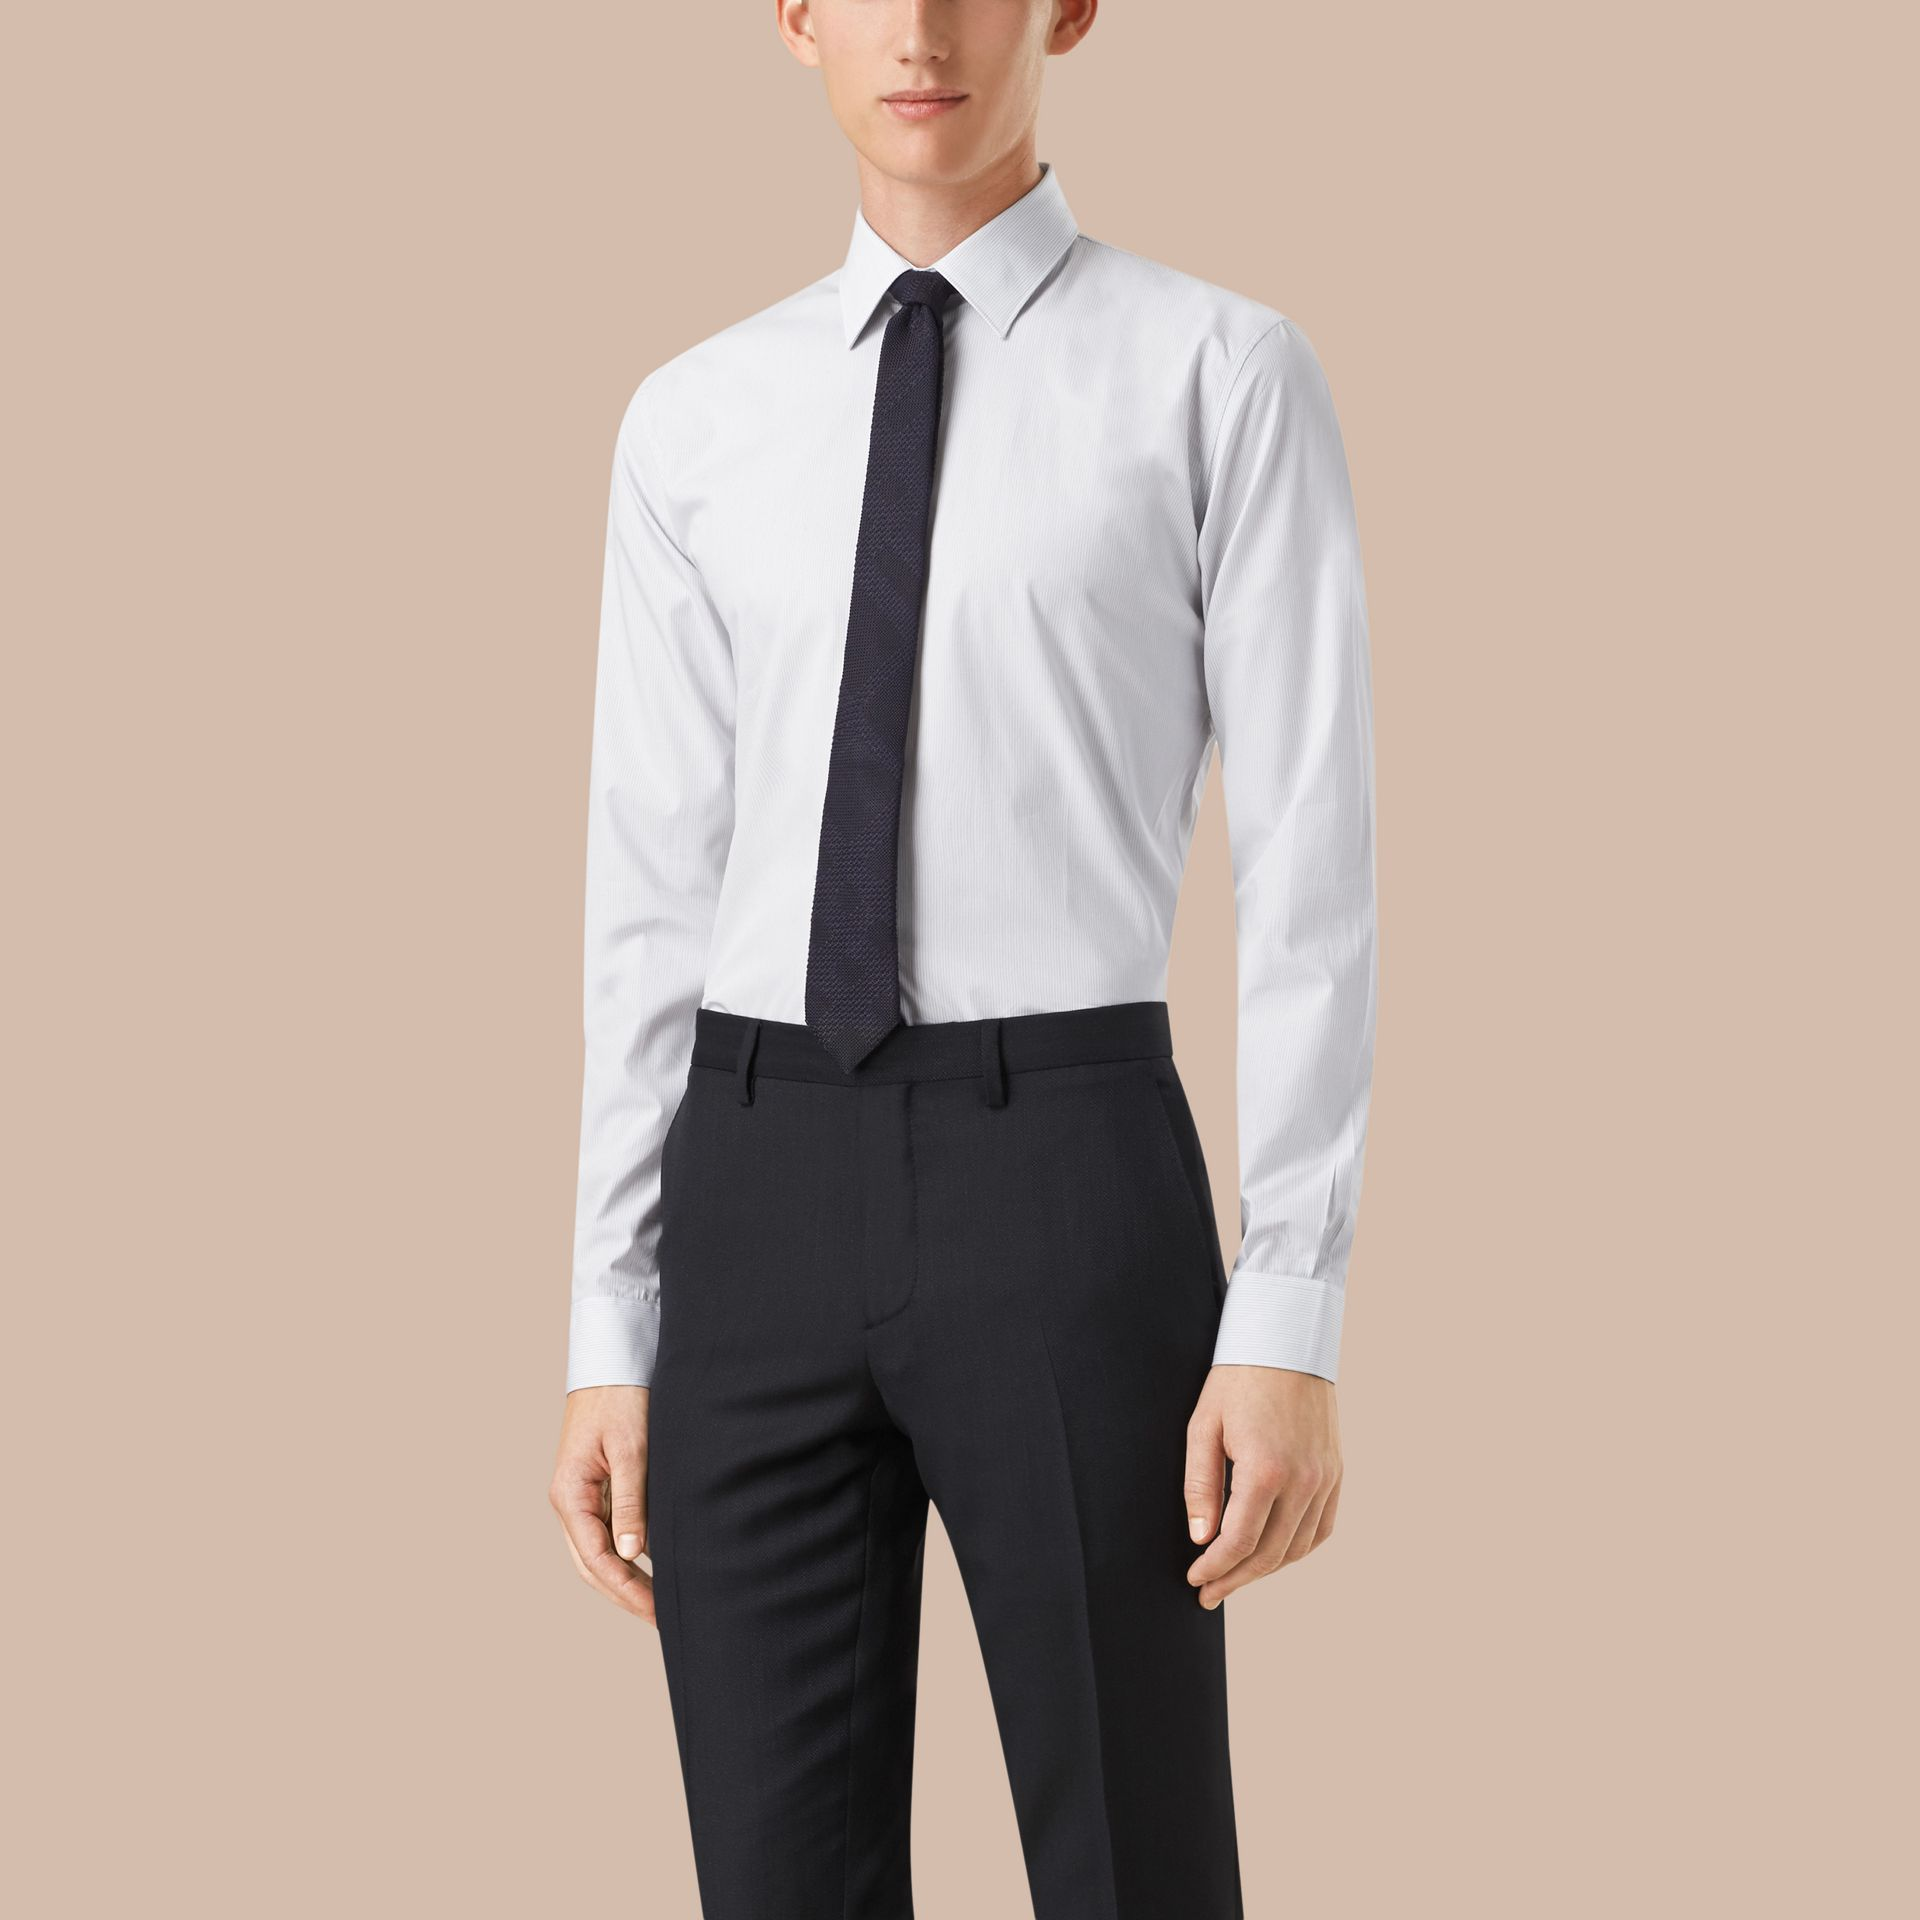 City grey Slim Fit Striped Cotton Poplin Shirt City Grey - gallery image 3